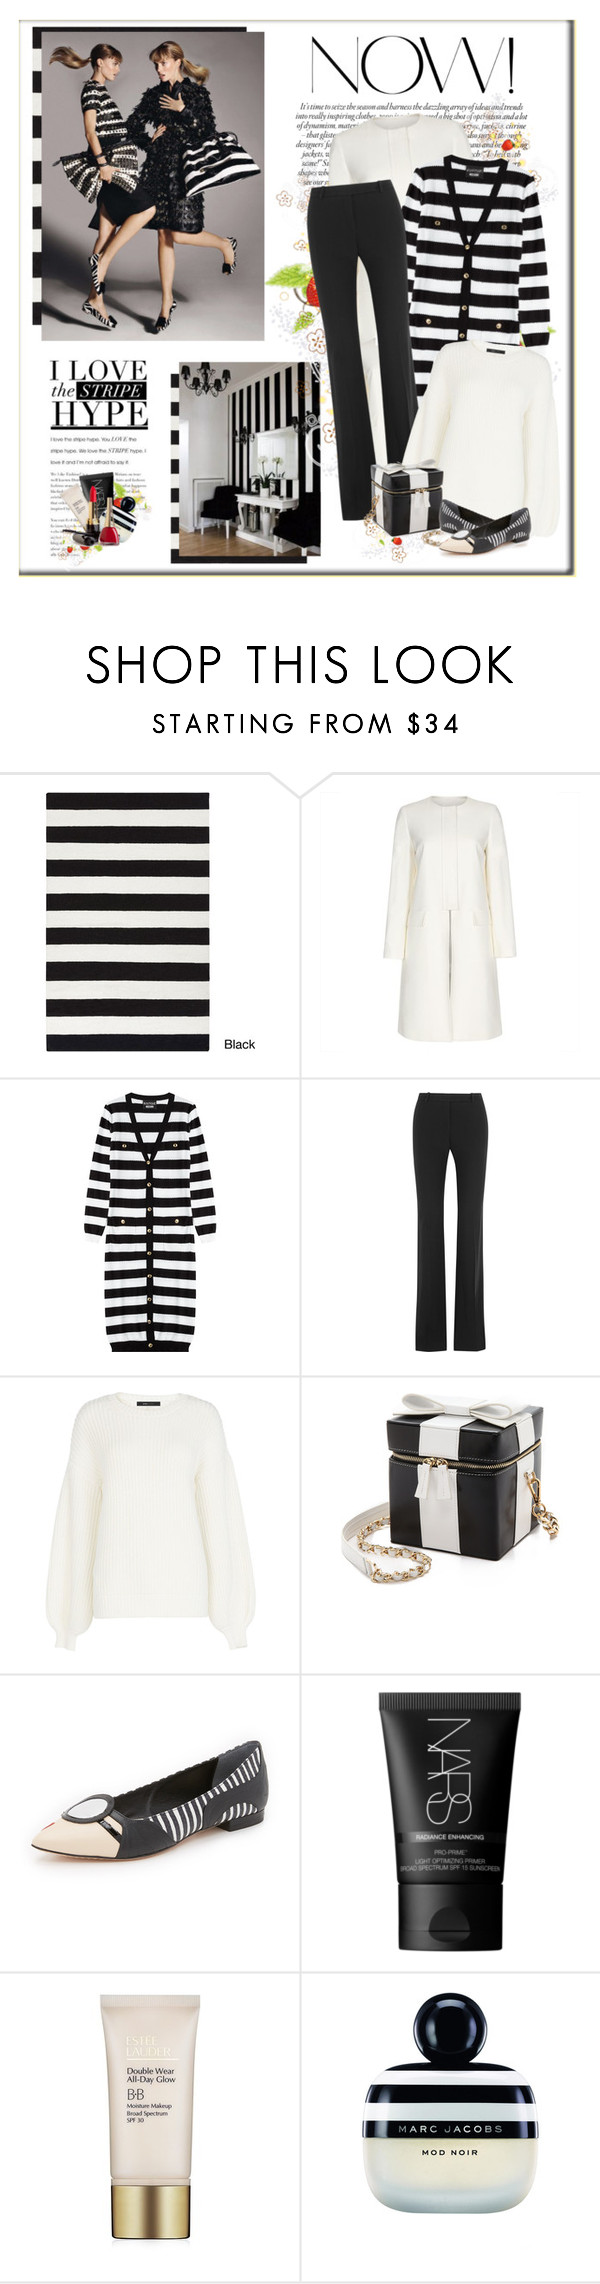 """""""Untitled #27"""" by smaeri ❤ liked on Polyvore featuring Surya, Paul Smith, Boutique Moschino, Alexander McQueen, BCBGMAXAZRIA, Alice + Olivia, NARS Cosmetics, Estée Lauder, Marc Jacobs and women's clothing"""